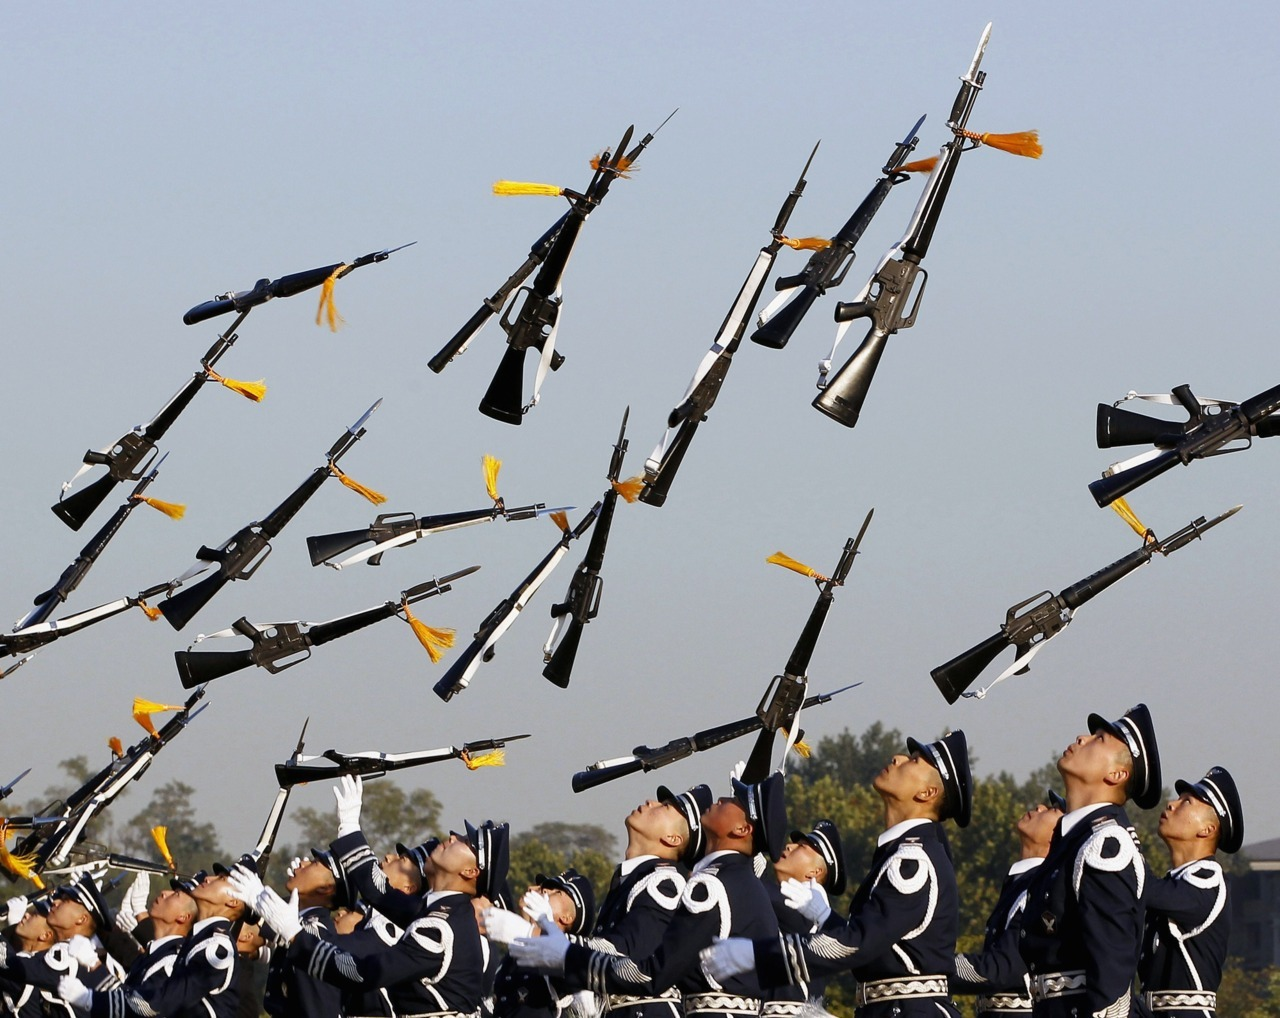 Photos of the day South Korean honour guards perform during a welcoming ceremony for foreign military leaders visiting the Seoul International Aerospace & Defense Exhibition 2011, Oct. 18, 2011. (Jo Yong-Hak/Reuters)